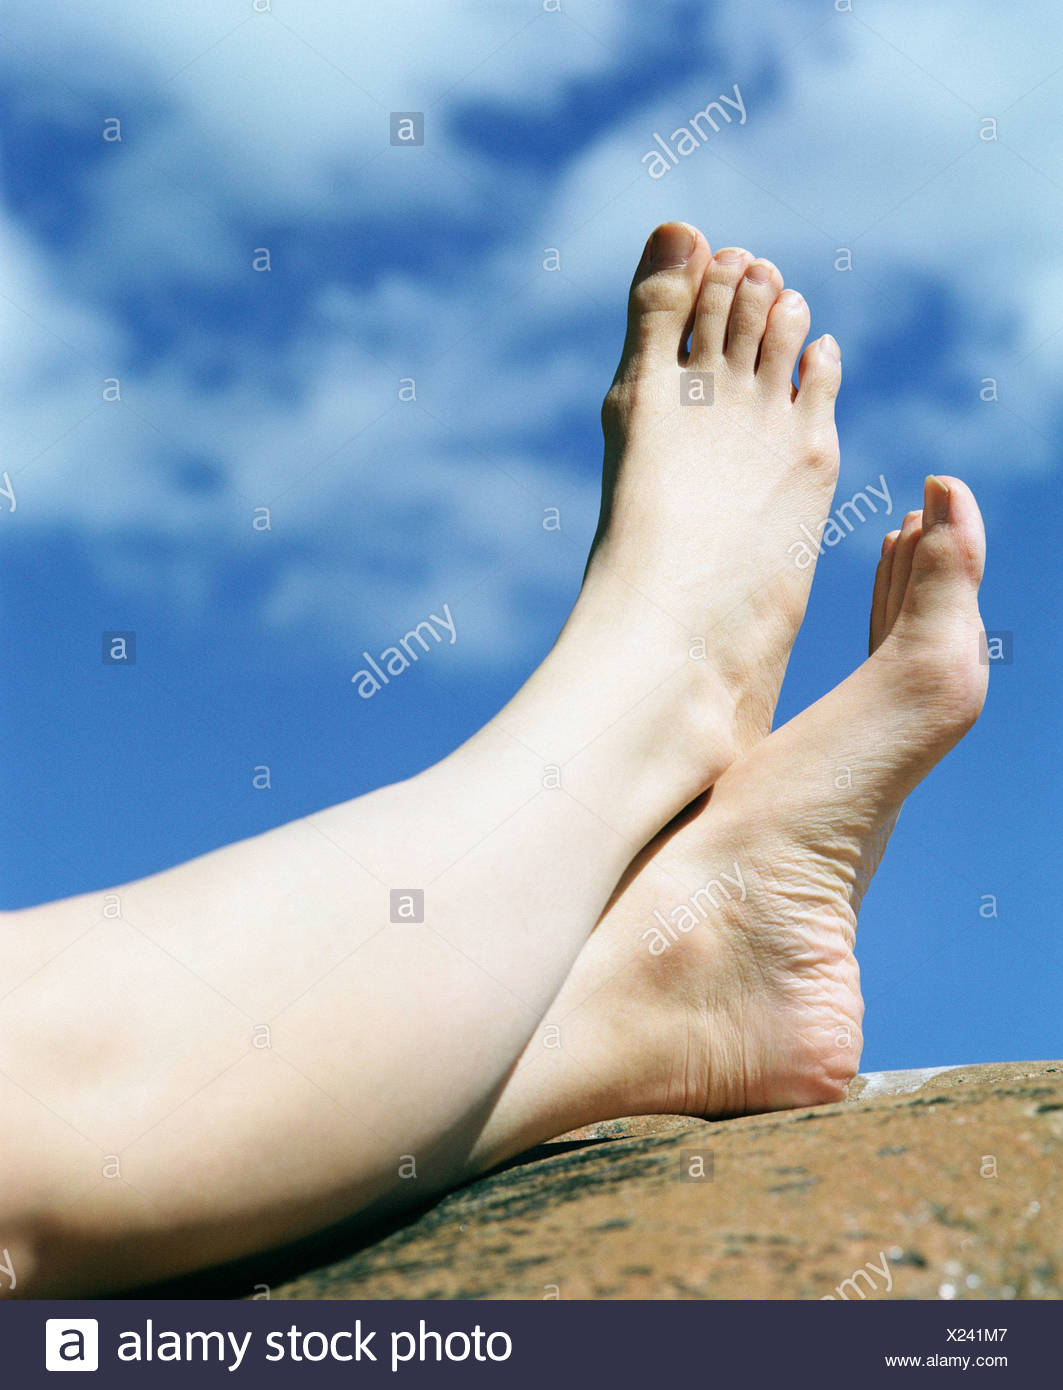 Close up of human leg - Stock Image